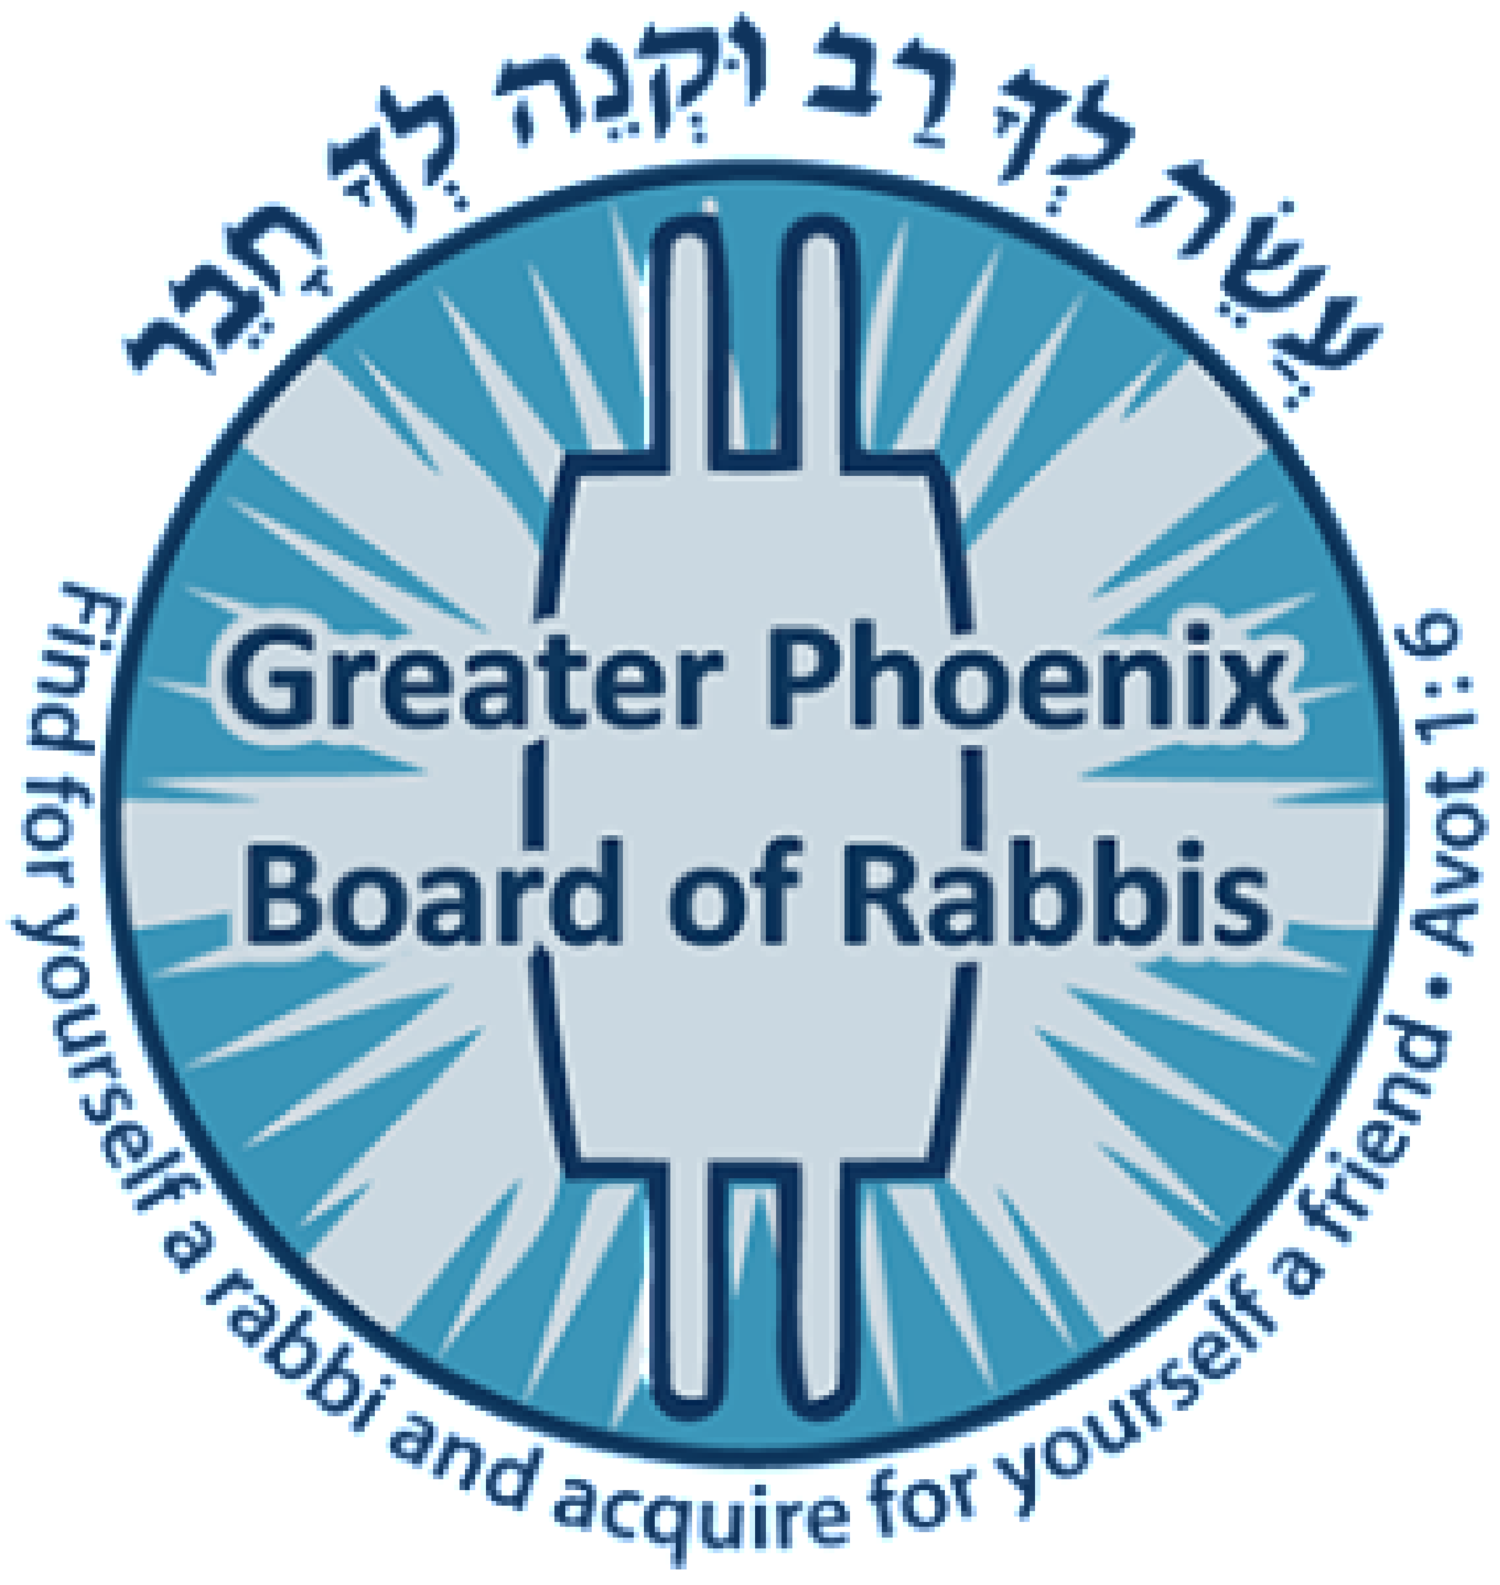 Greater Phoenix Board of Rabbis